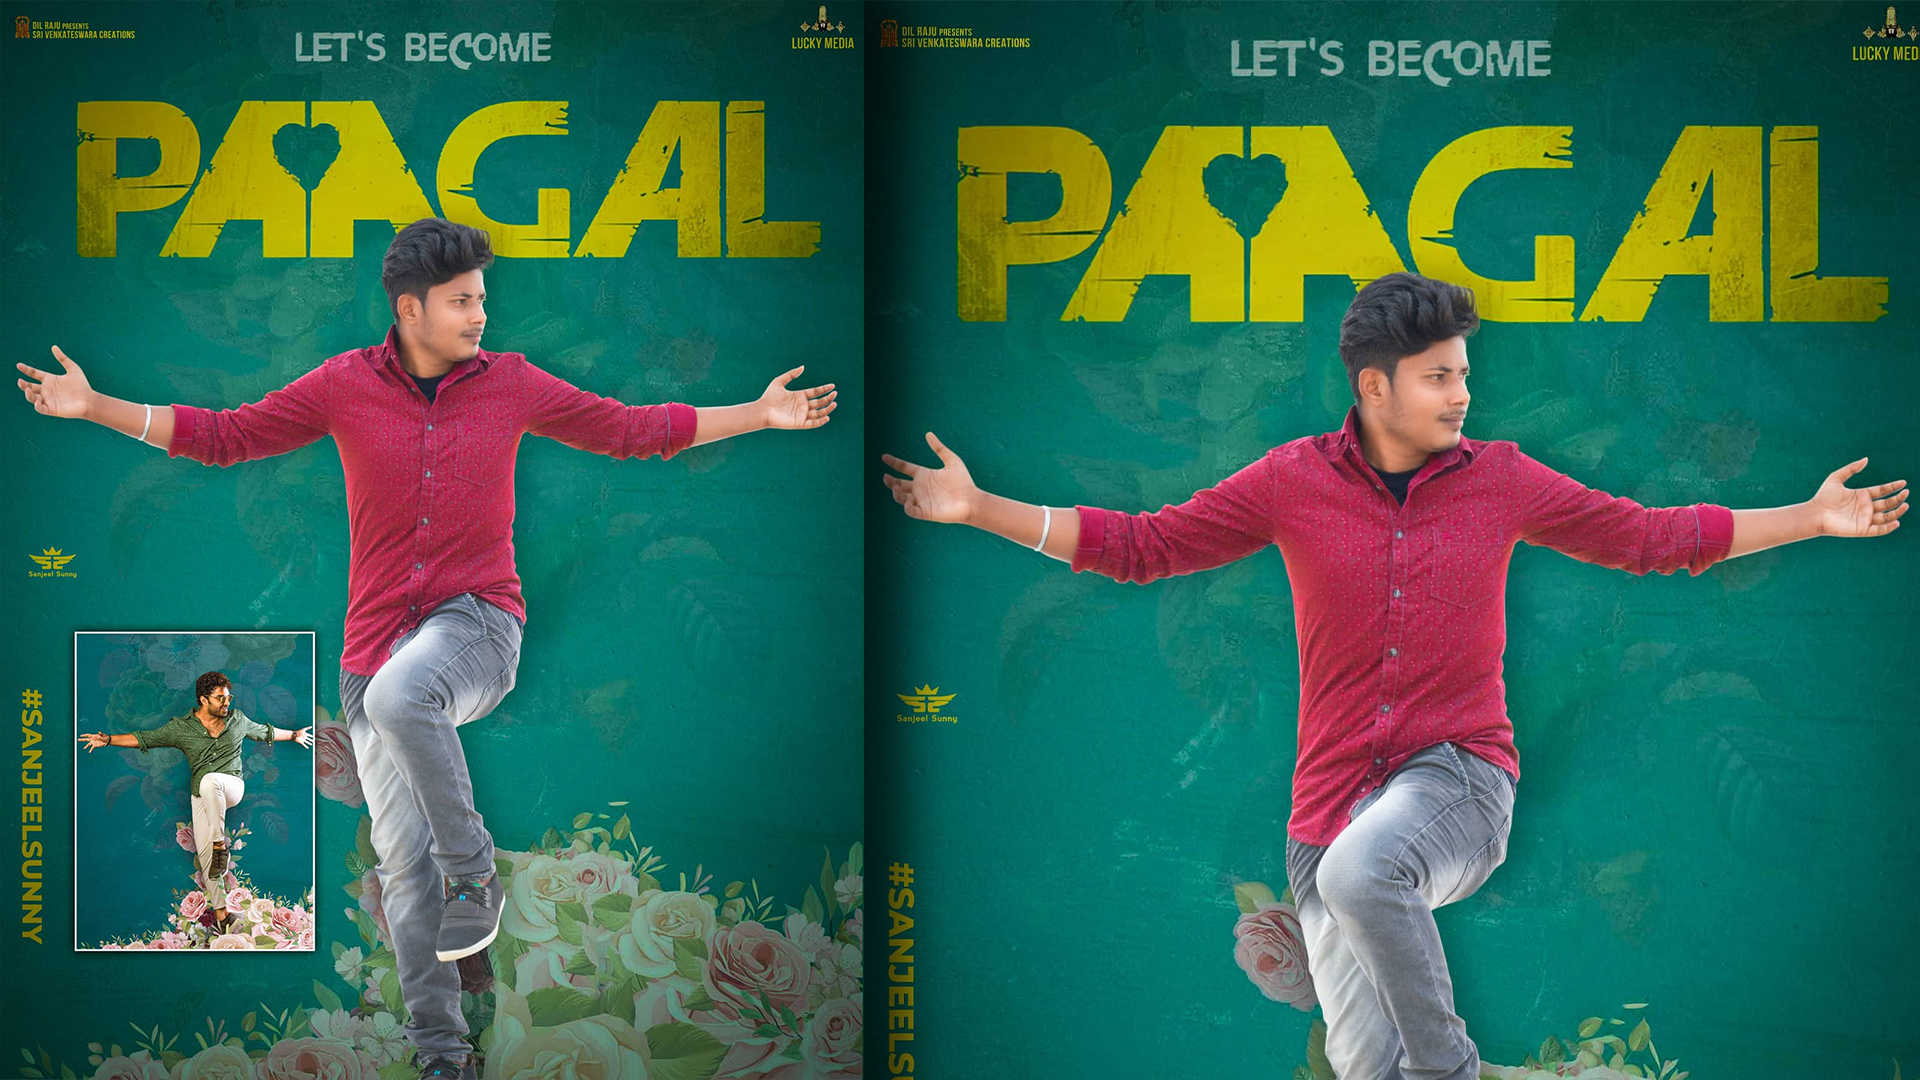 Paagal Movie Poster Editing HD Background Download | Free Telugu movie  poster background 2021 - Sanjeel Sunny